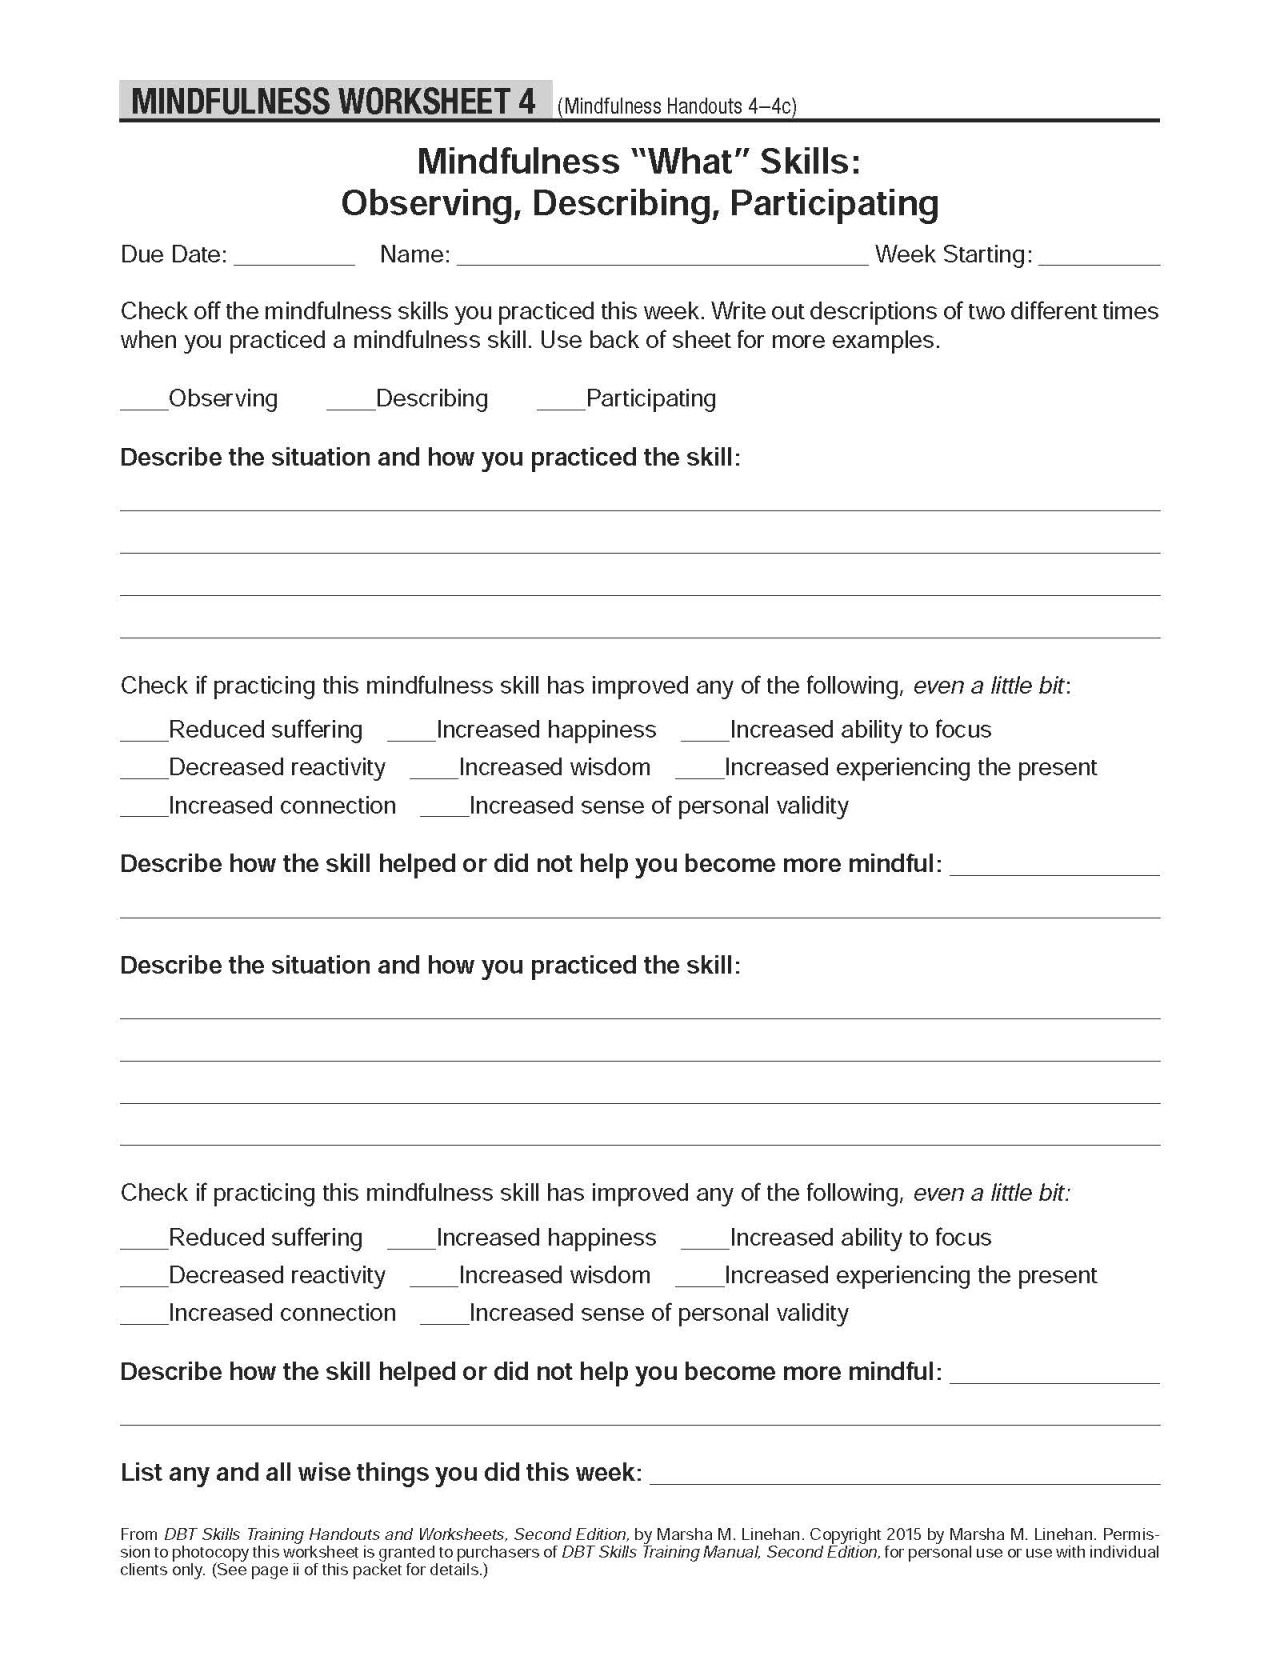 Worksheets Dbt Skills Worksheets your life matters therapy pinterest dbt self help resources mindfulness observing describing participating the worksheets accompany handout 4